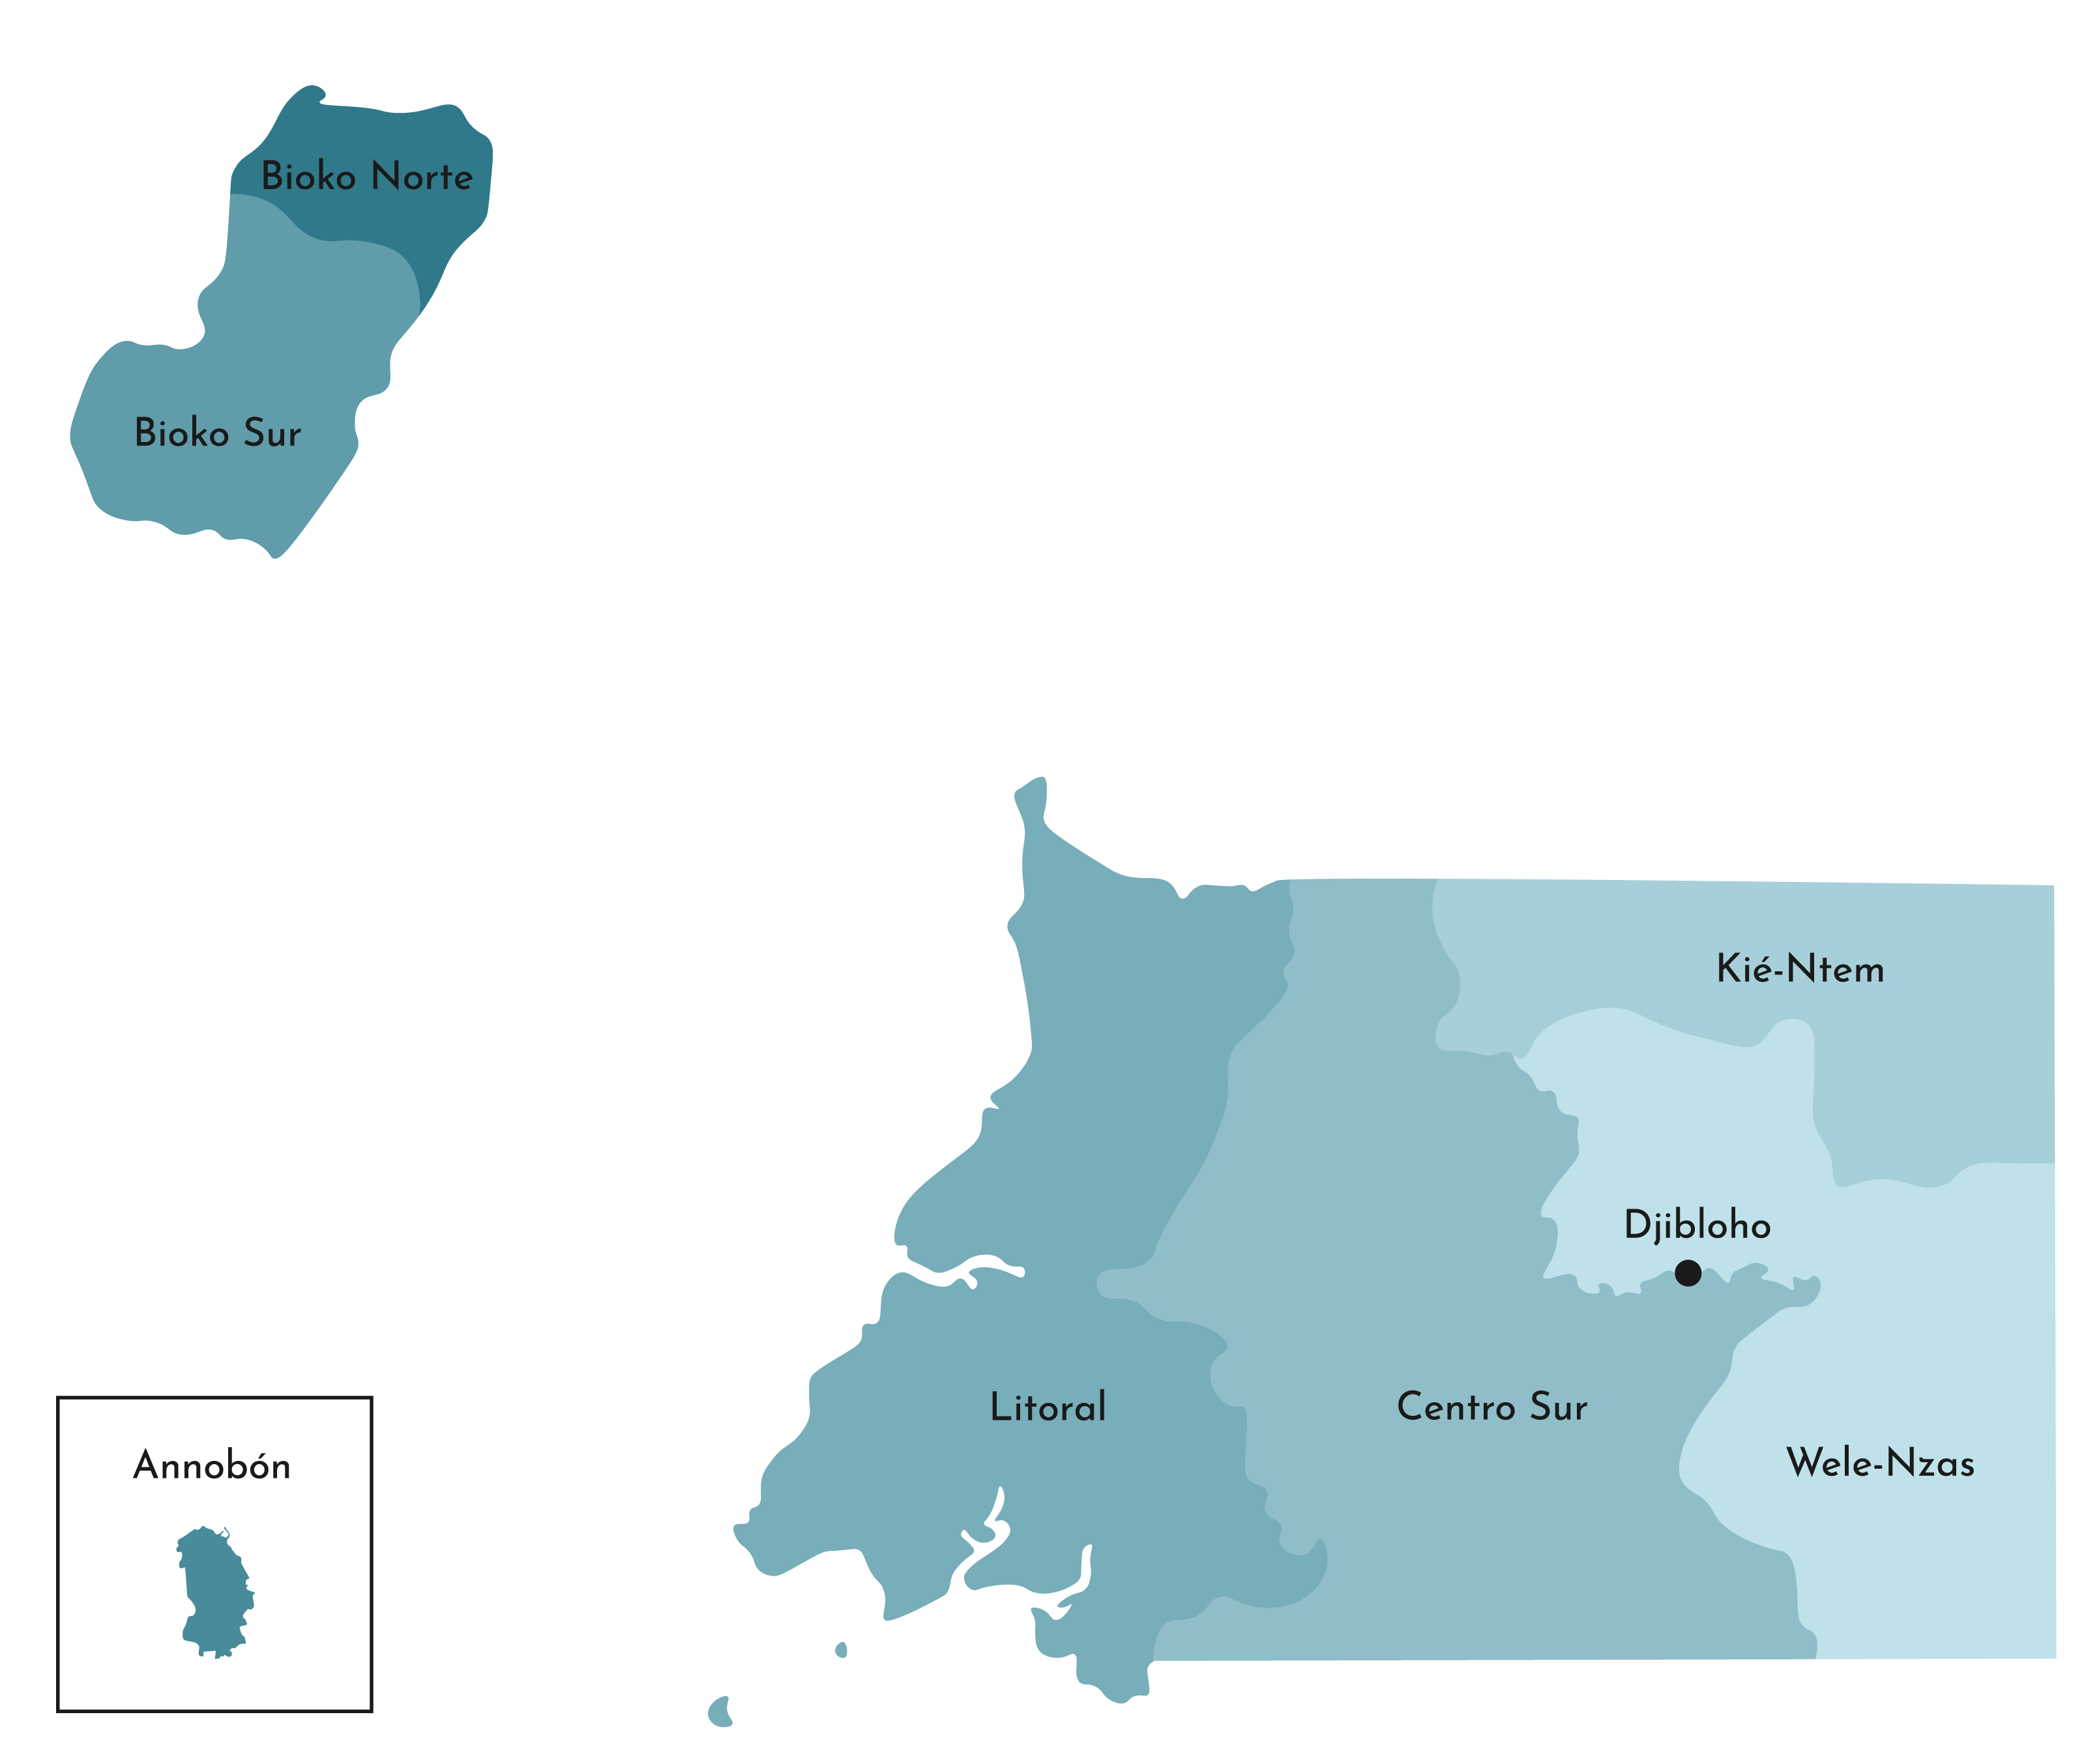 Political Map of Equatorial Guinea displaying its 8 provinces, and their major cities.